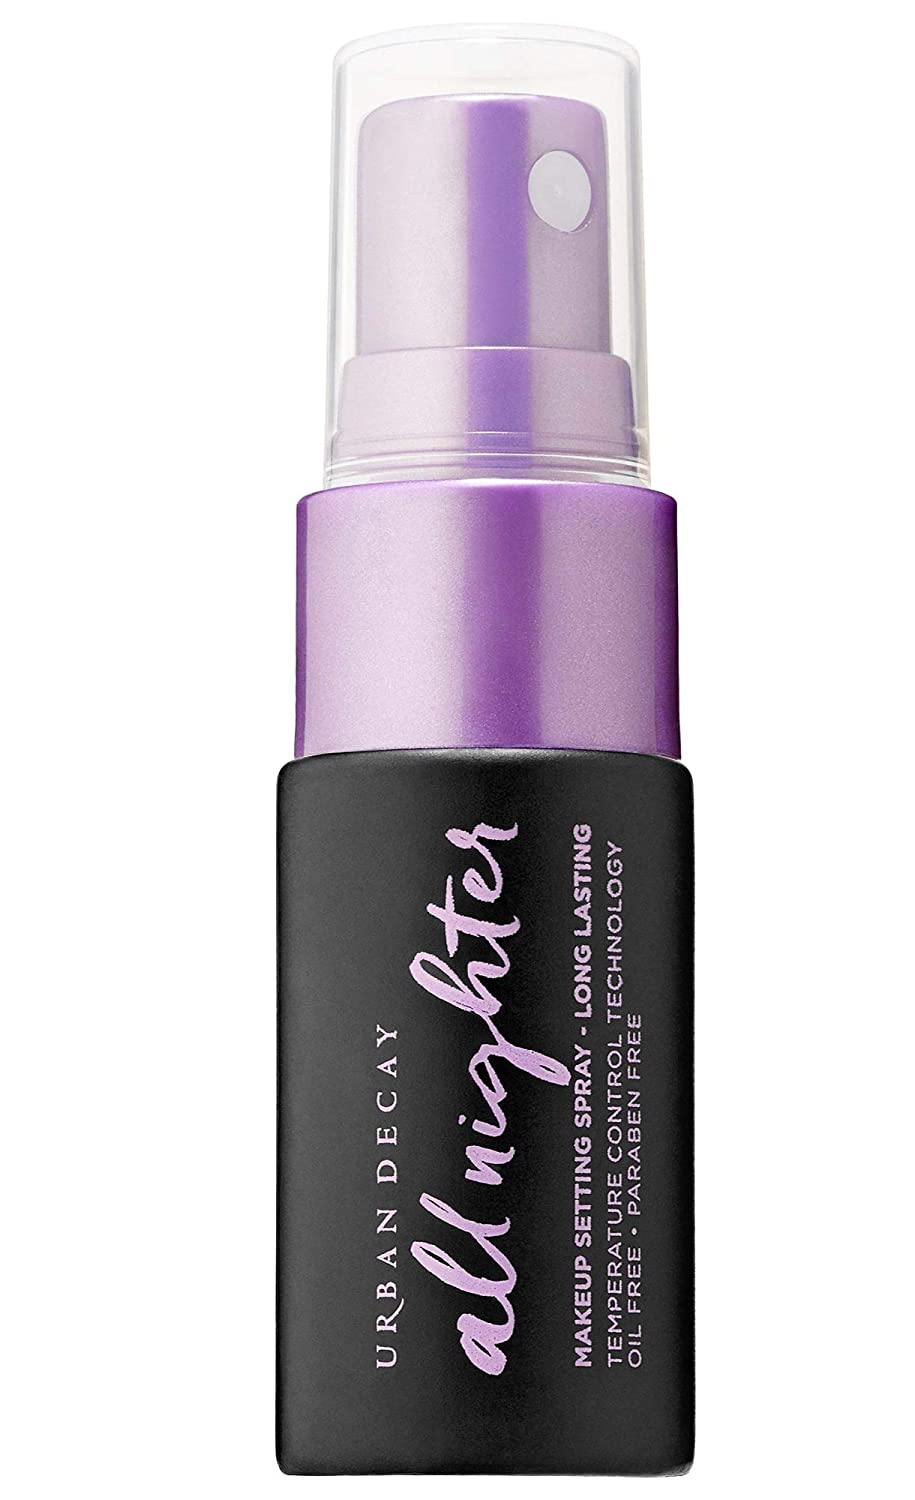 Urban Decay All Nighter Long-Lasting Makeup Setting Spray ~ Trial Travel Size ~ 0.5 fl oz